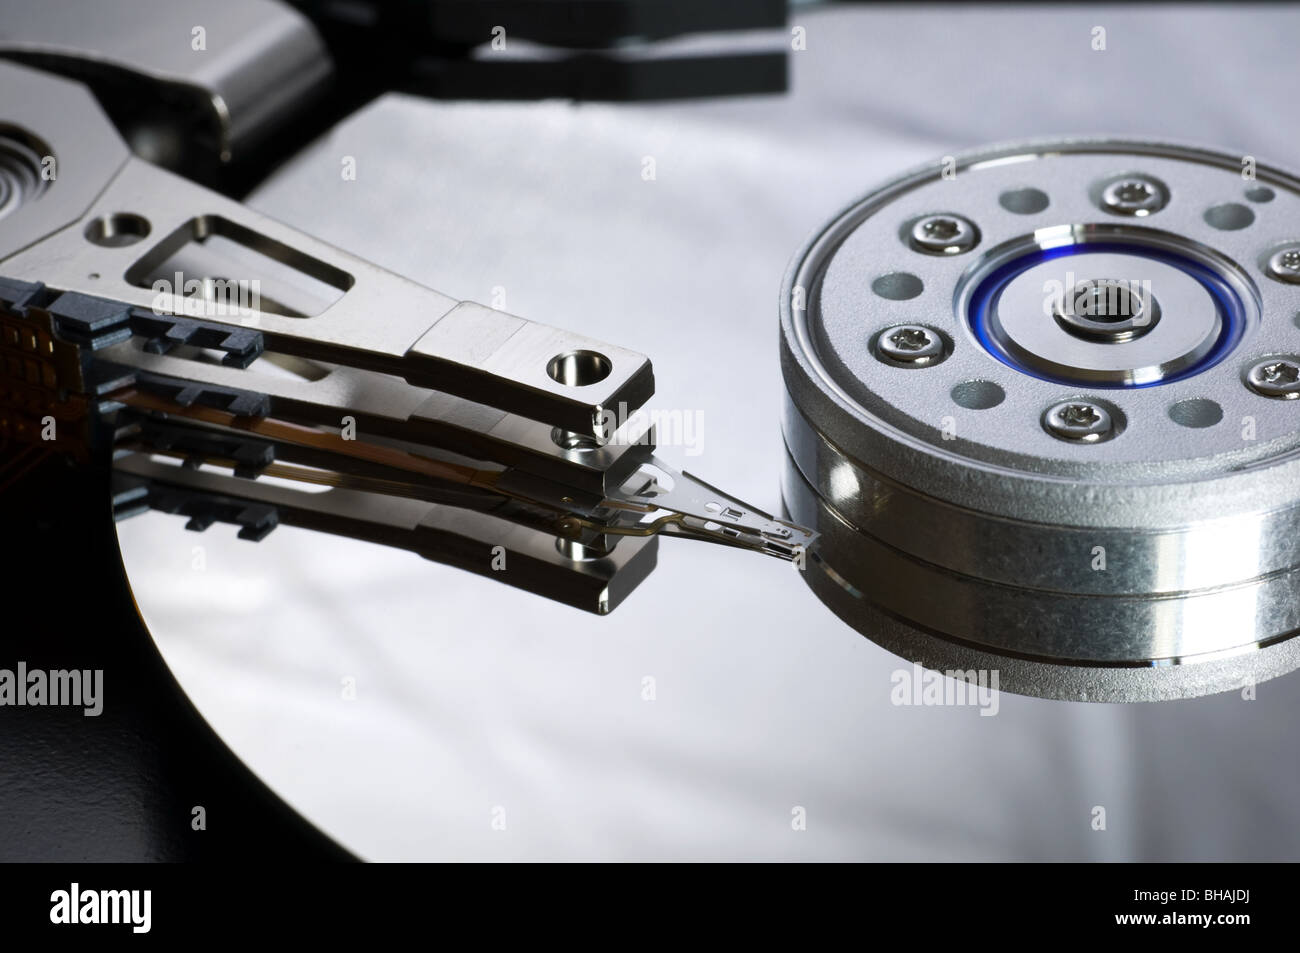 Dismantled hard drive showing platter and read/write head - Stock Image